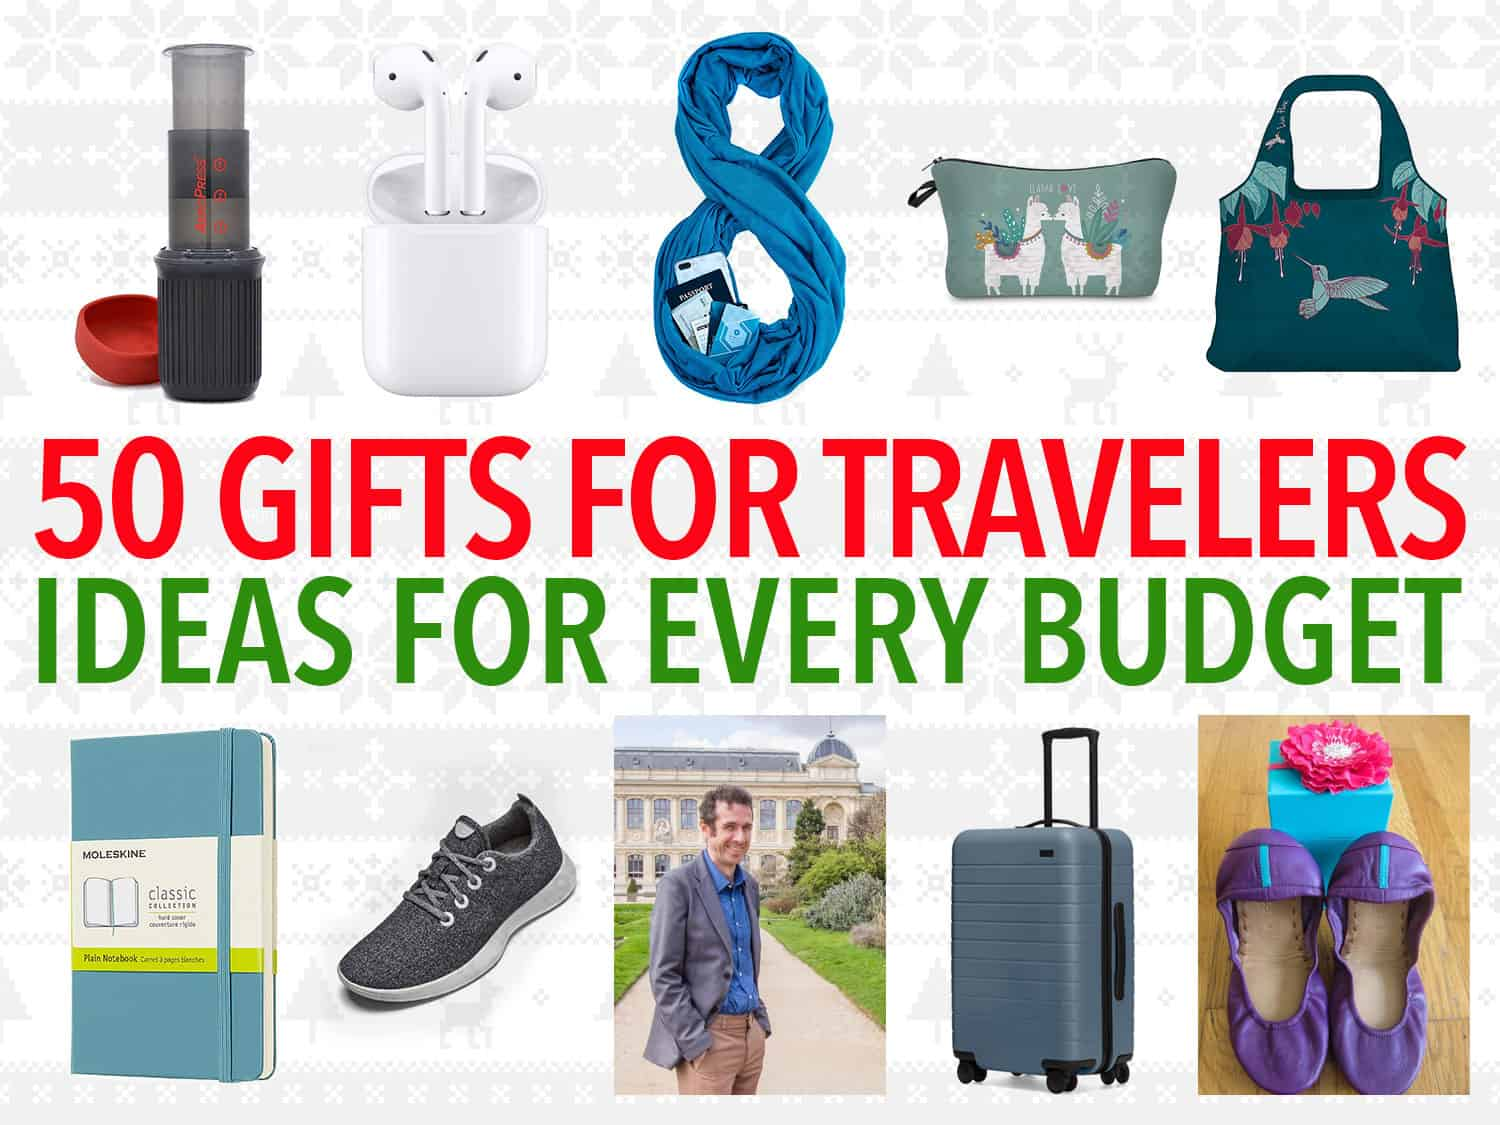 The best gifts for travelers in 2020 including small and useful travel gifts for every budget